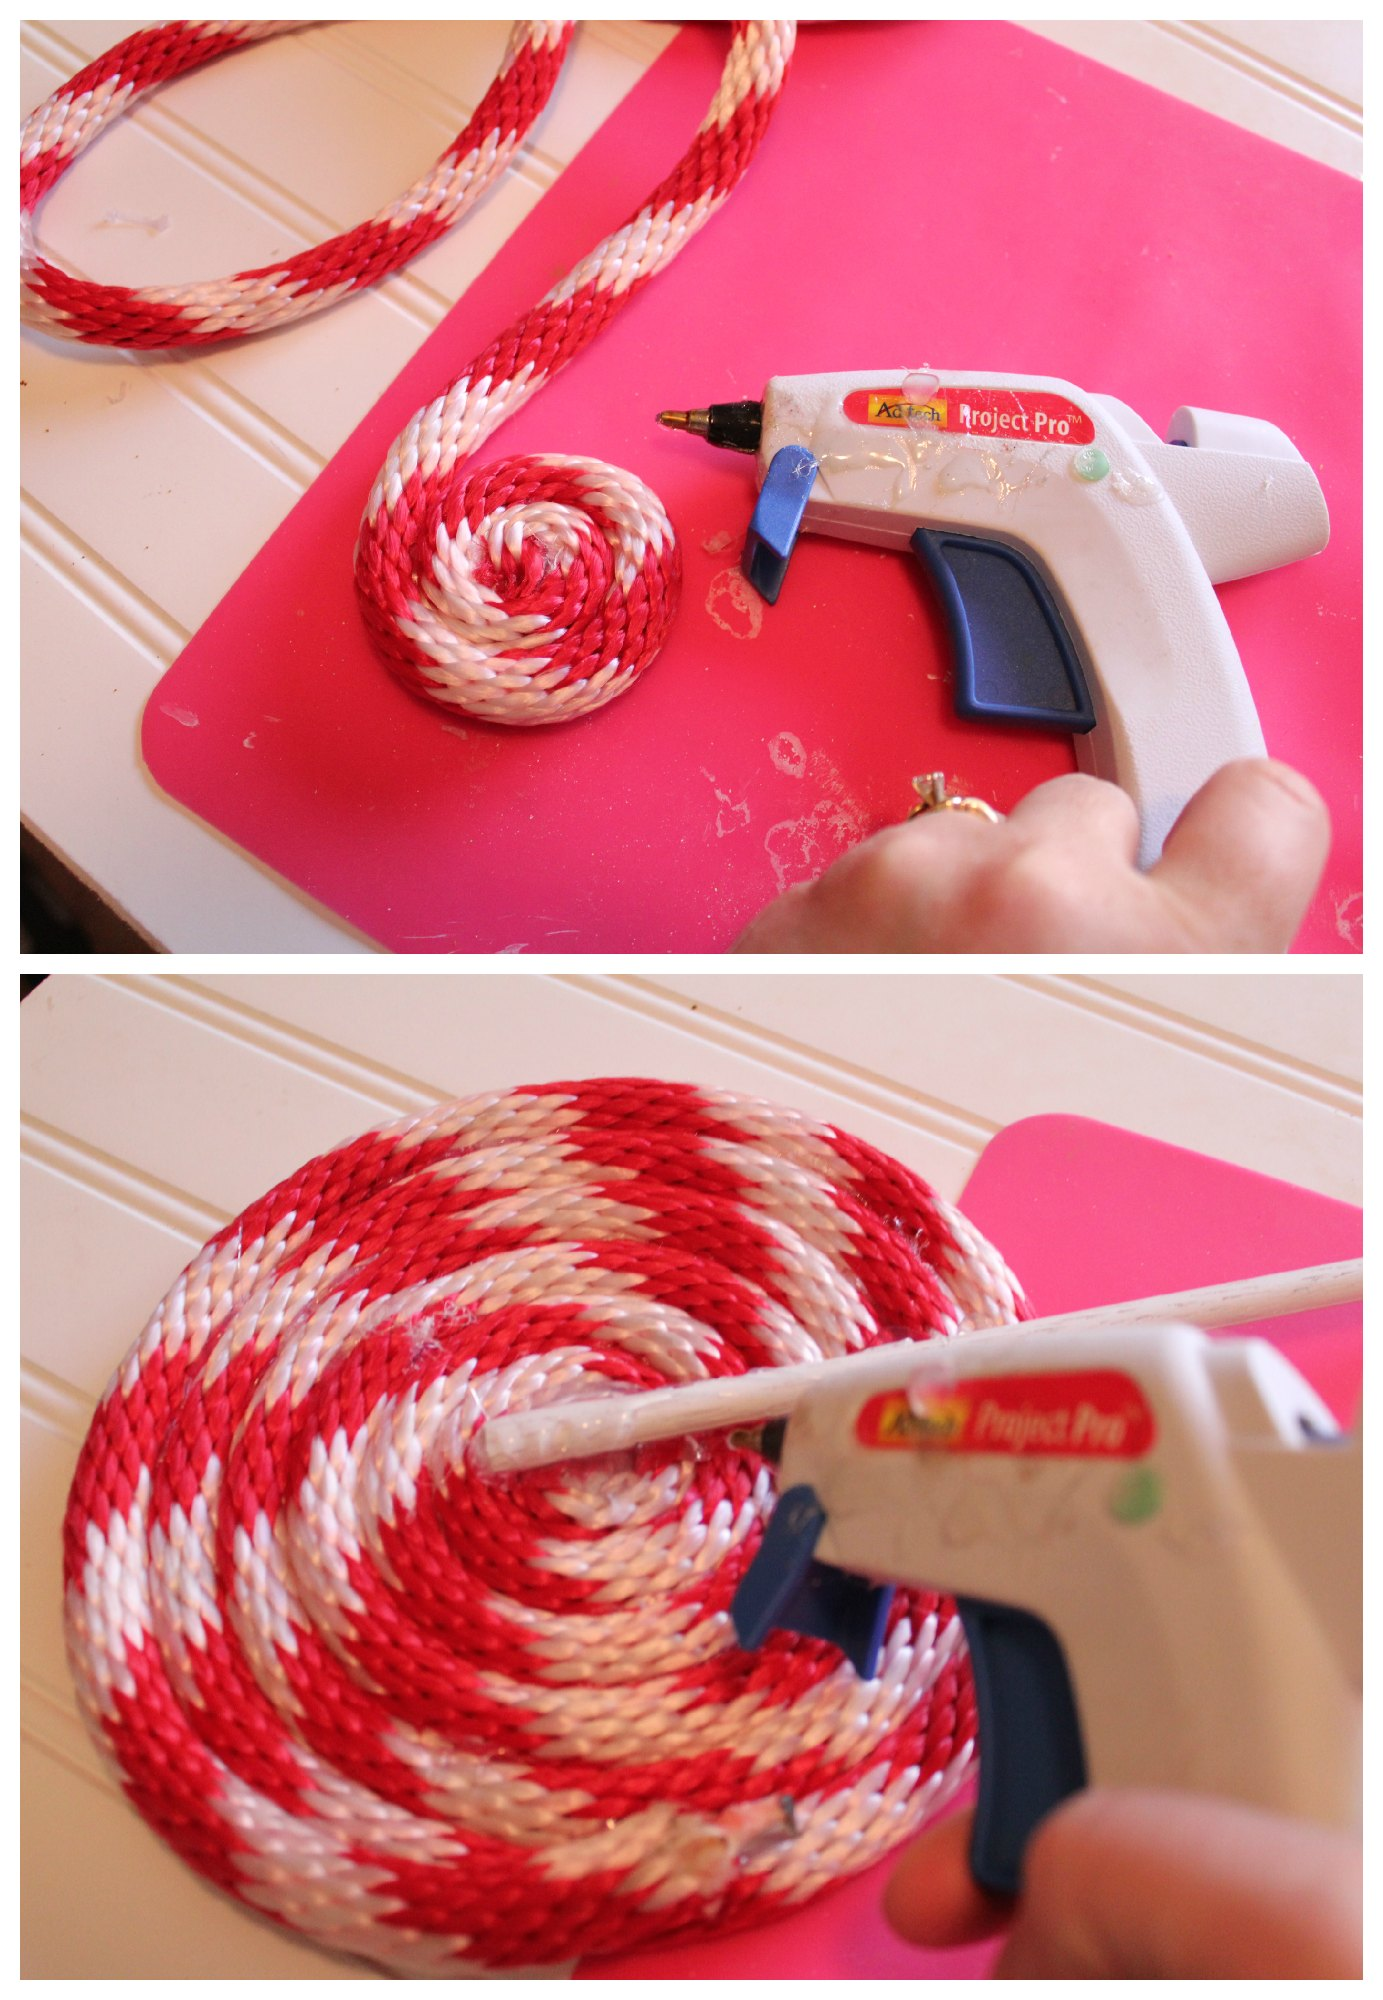 Making rope lollipops